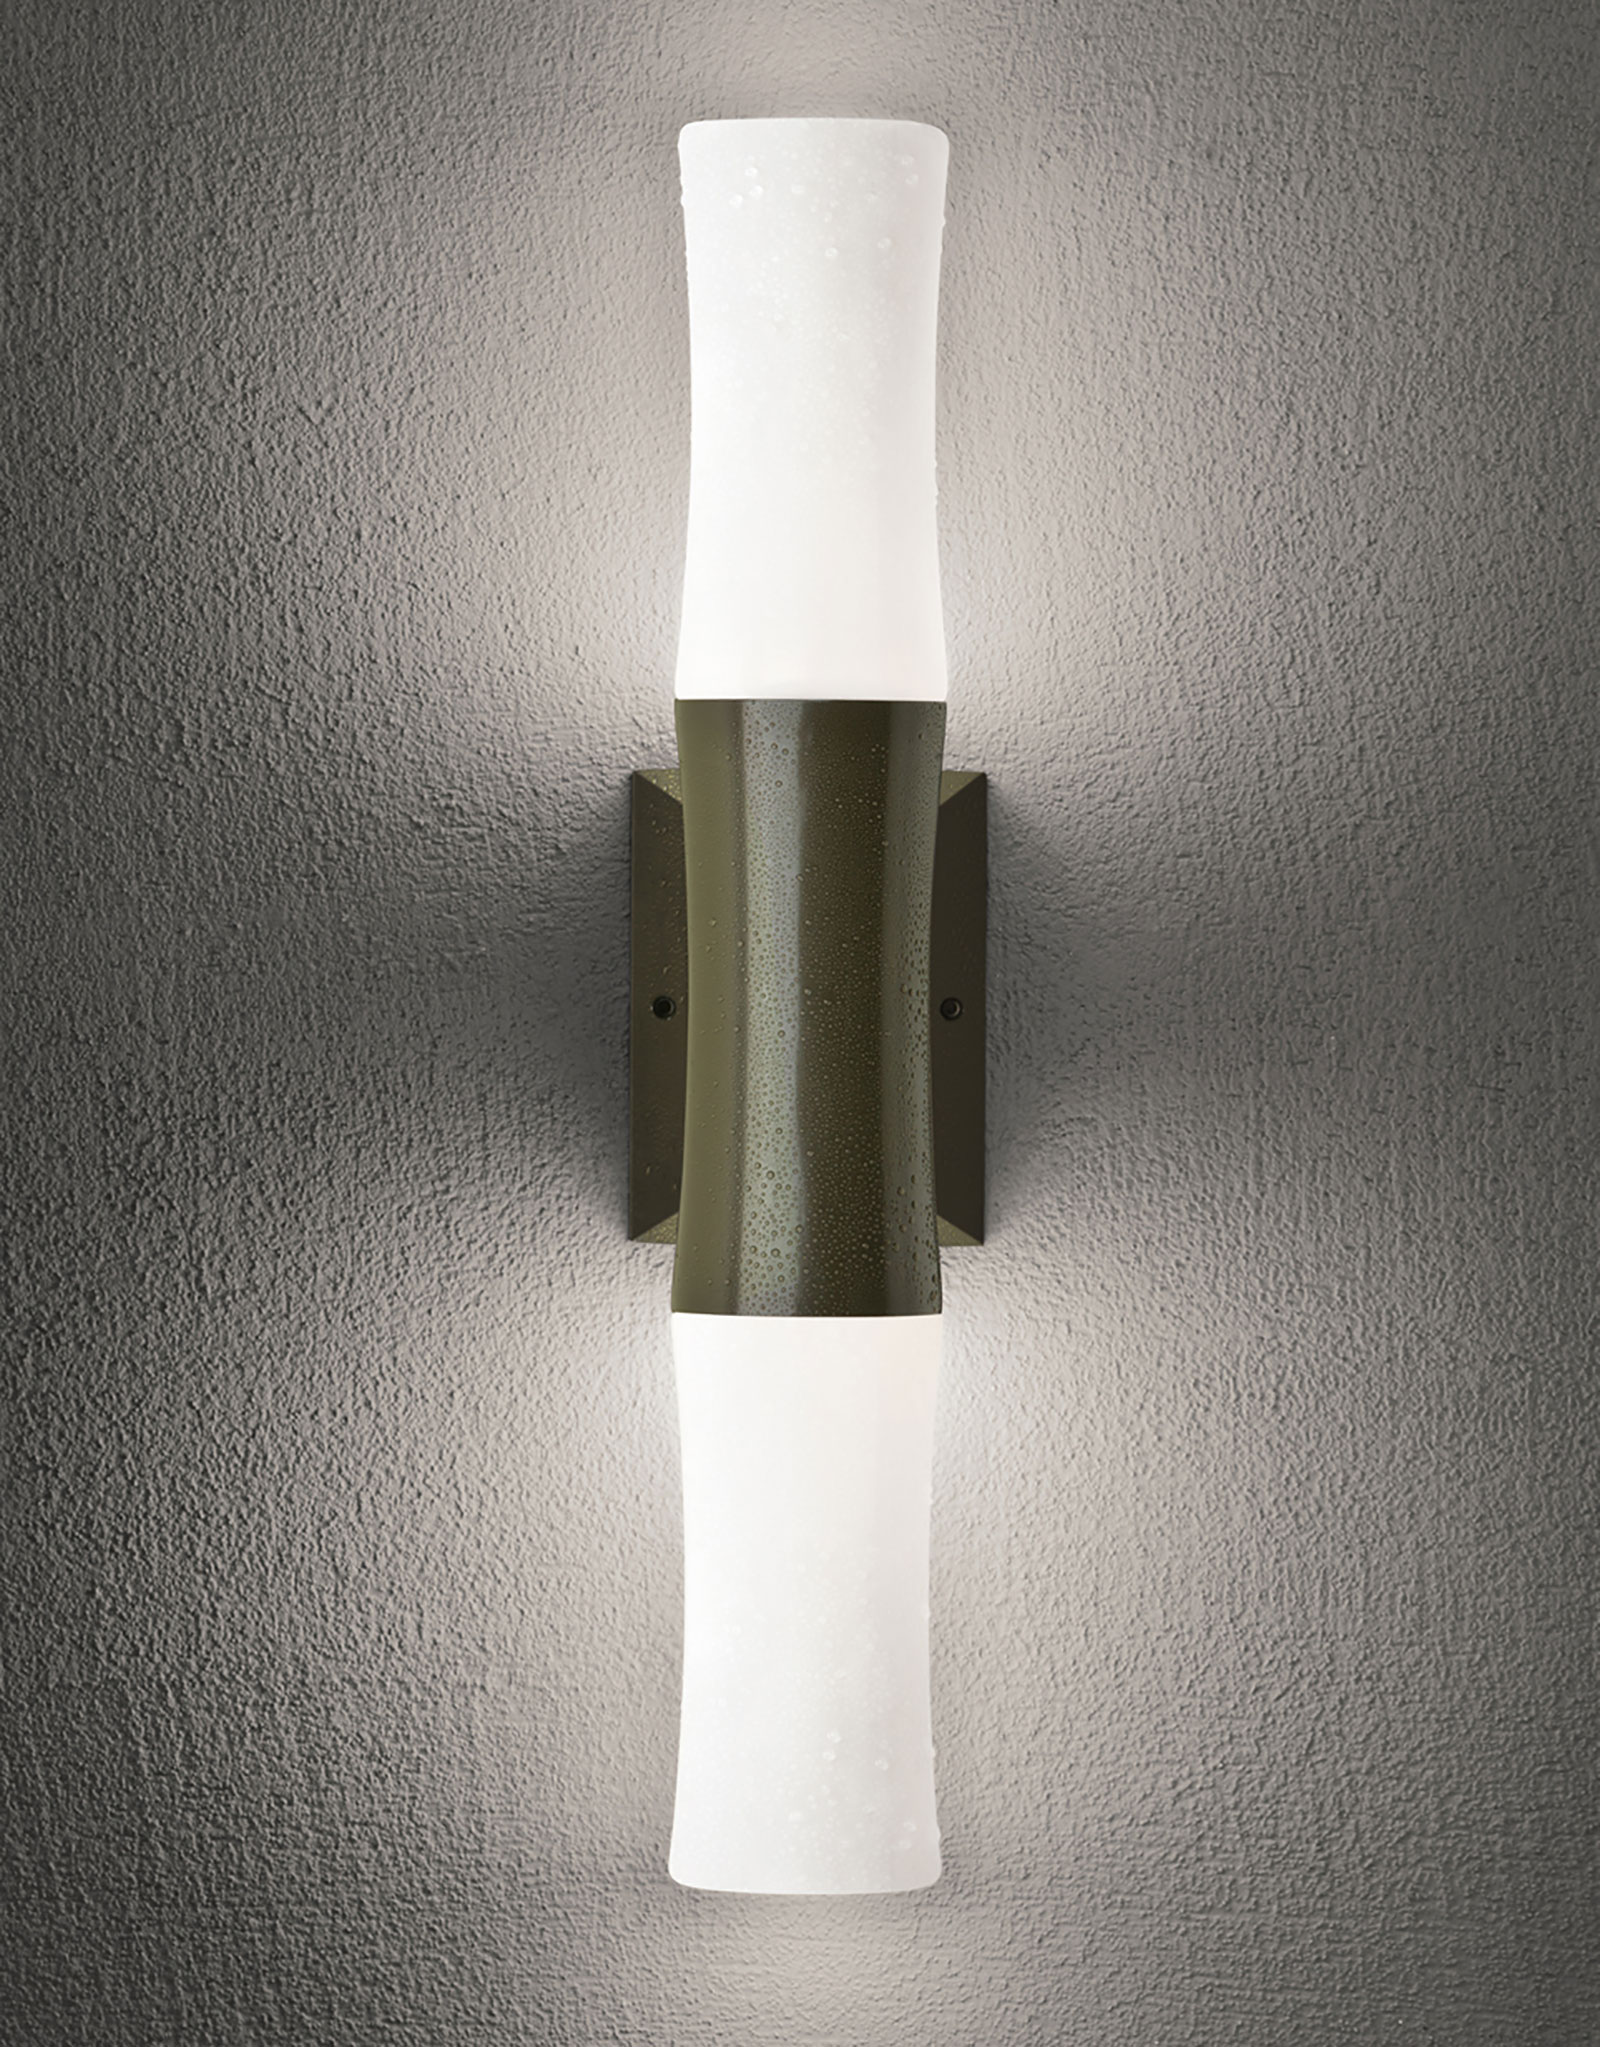 Bamboo Outdoor Ocl Architectural Lighting